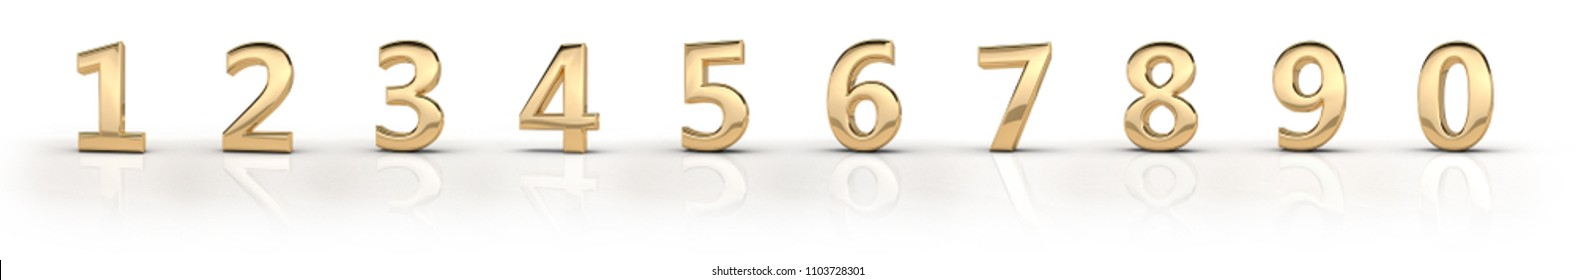 3d render (illustration) of gold metal characters. Numbers, dates, letters, characters. One, two, three, four, five, six, seven, eight, nine, zero. 1,2,3,4,5,6,7,8,9,0. On celebration. Happy birthday.